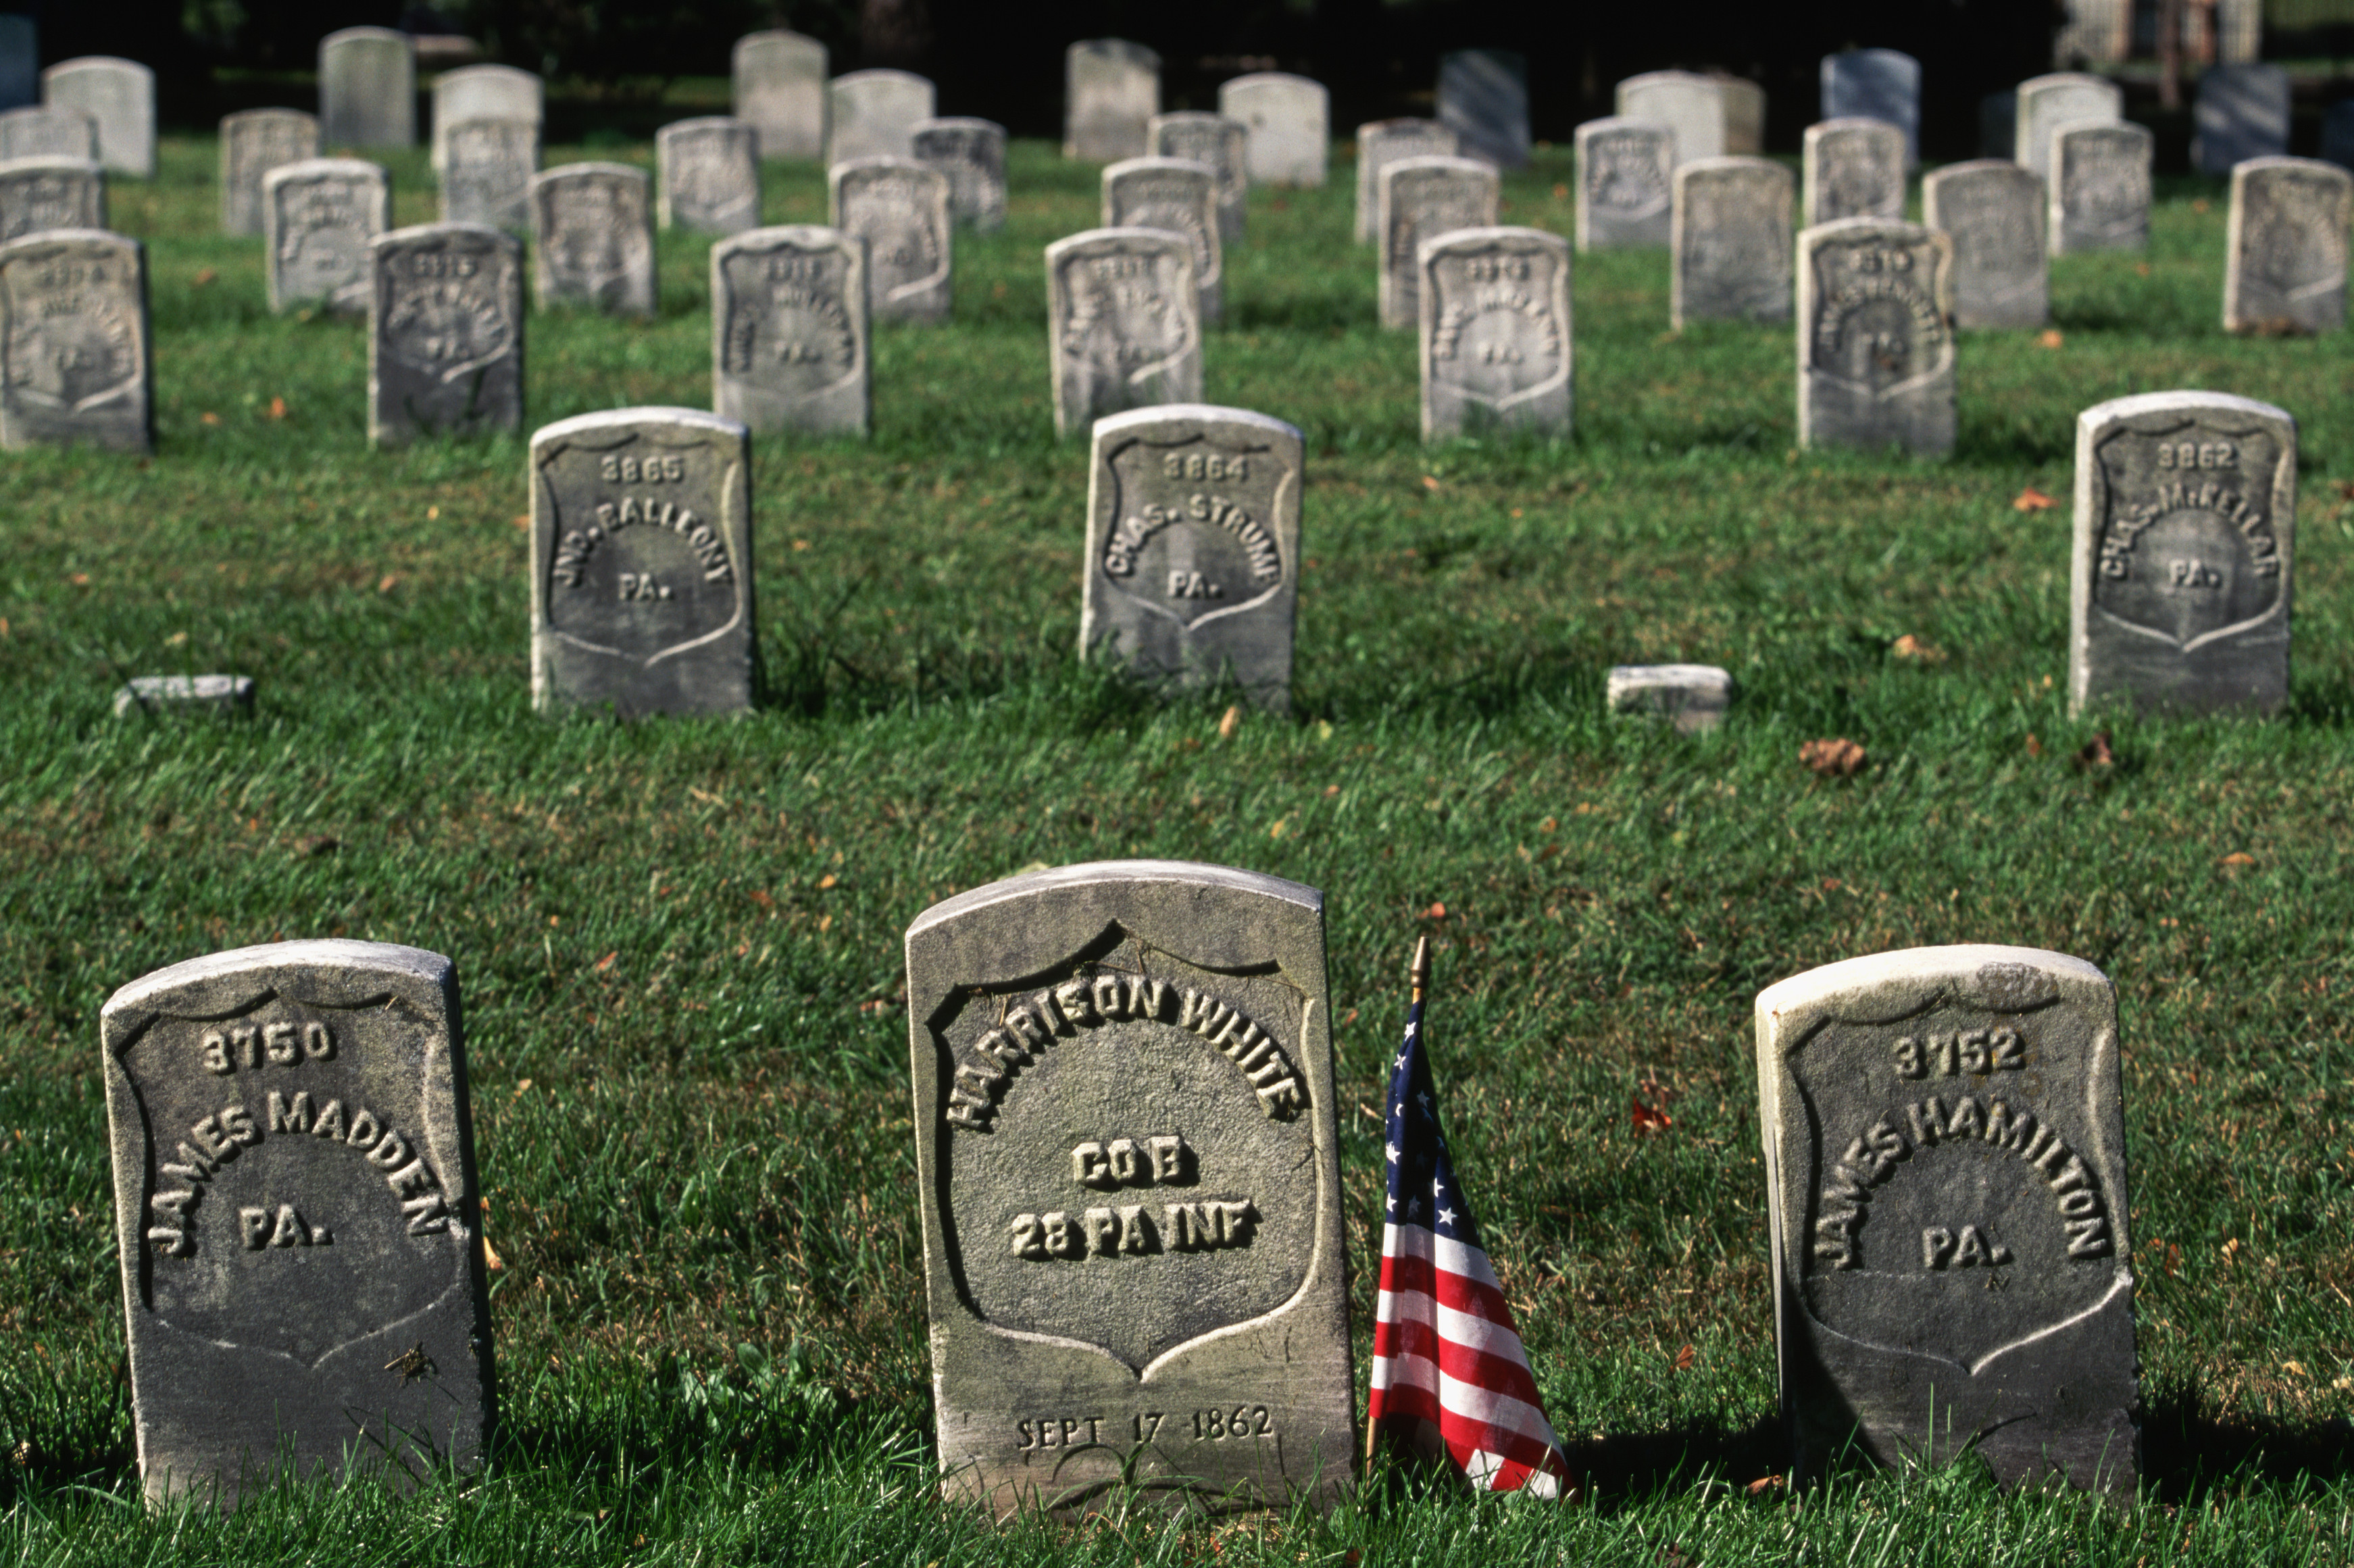 history of the american civil war Rated 5 out of 5 by old engineer from fantastic coverage of the civil war with a great deal of previous study of the american civil war from many viewpoints, this course really hits the mark this course is an excellent overall presentation of a significant, difficult period in american history.